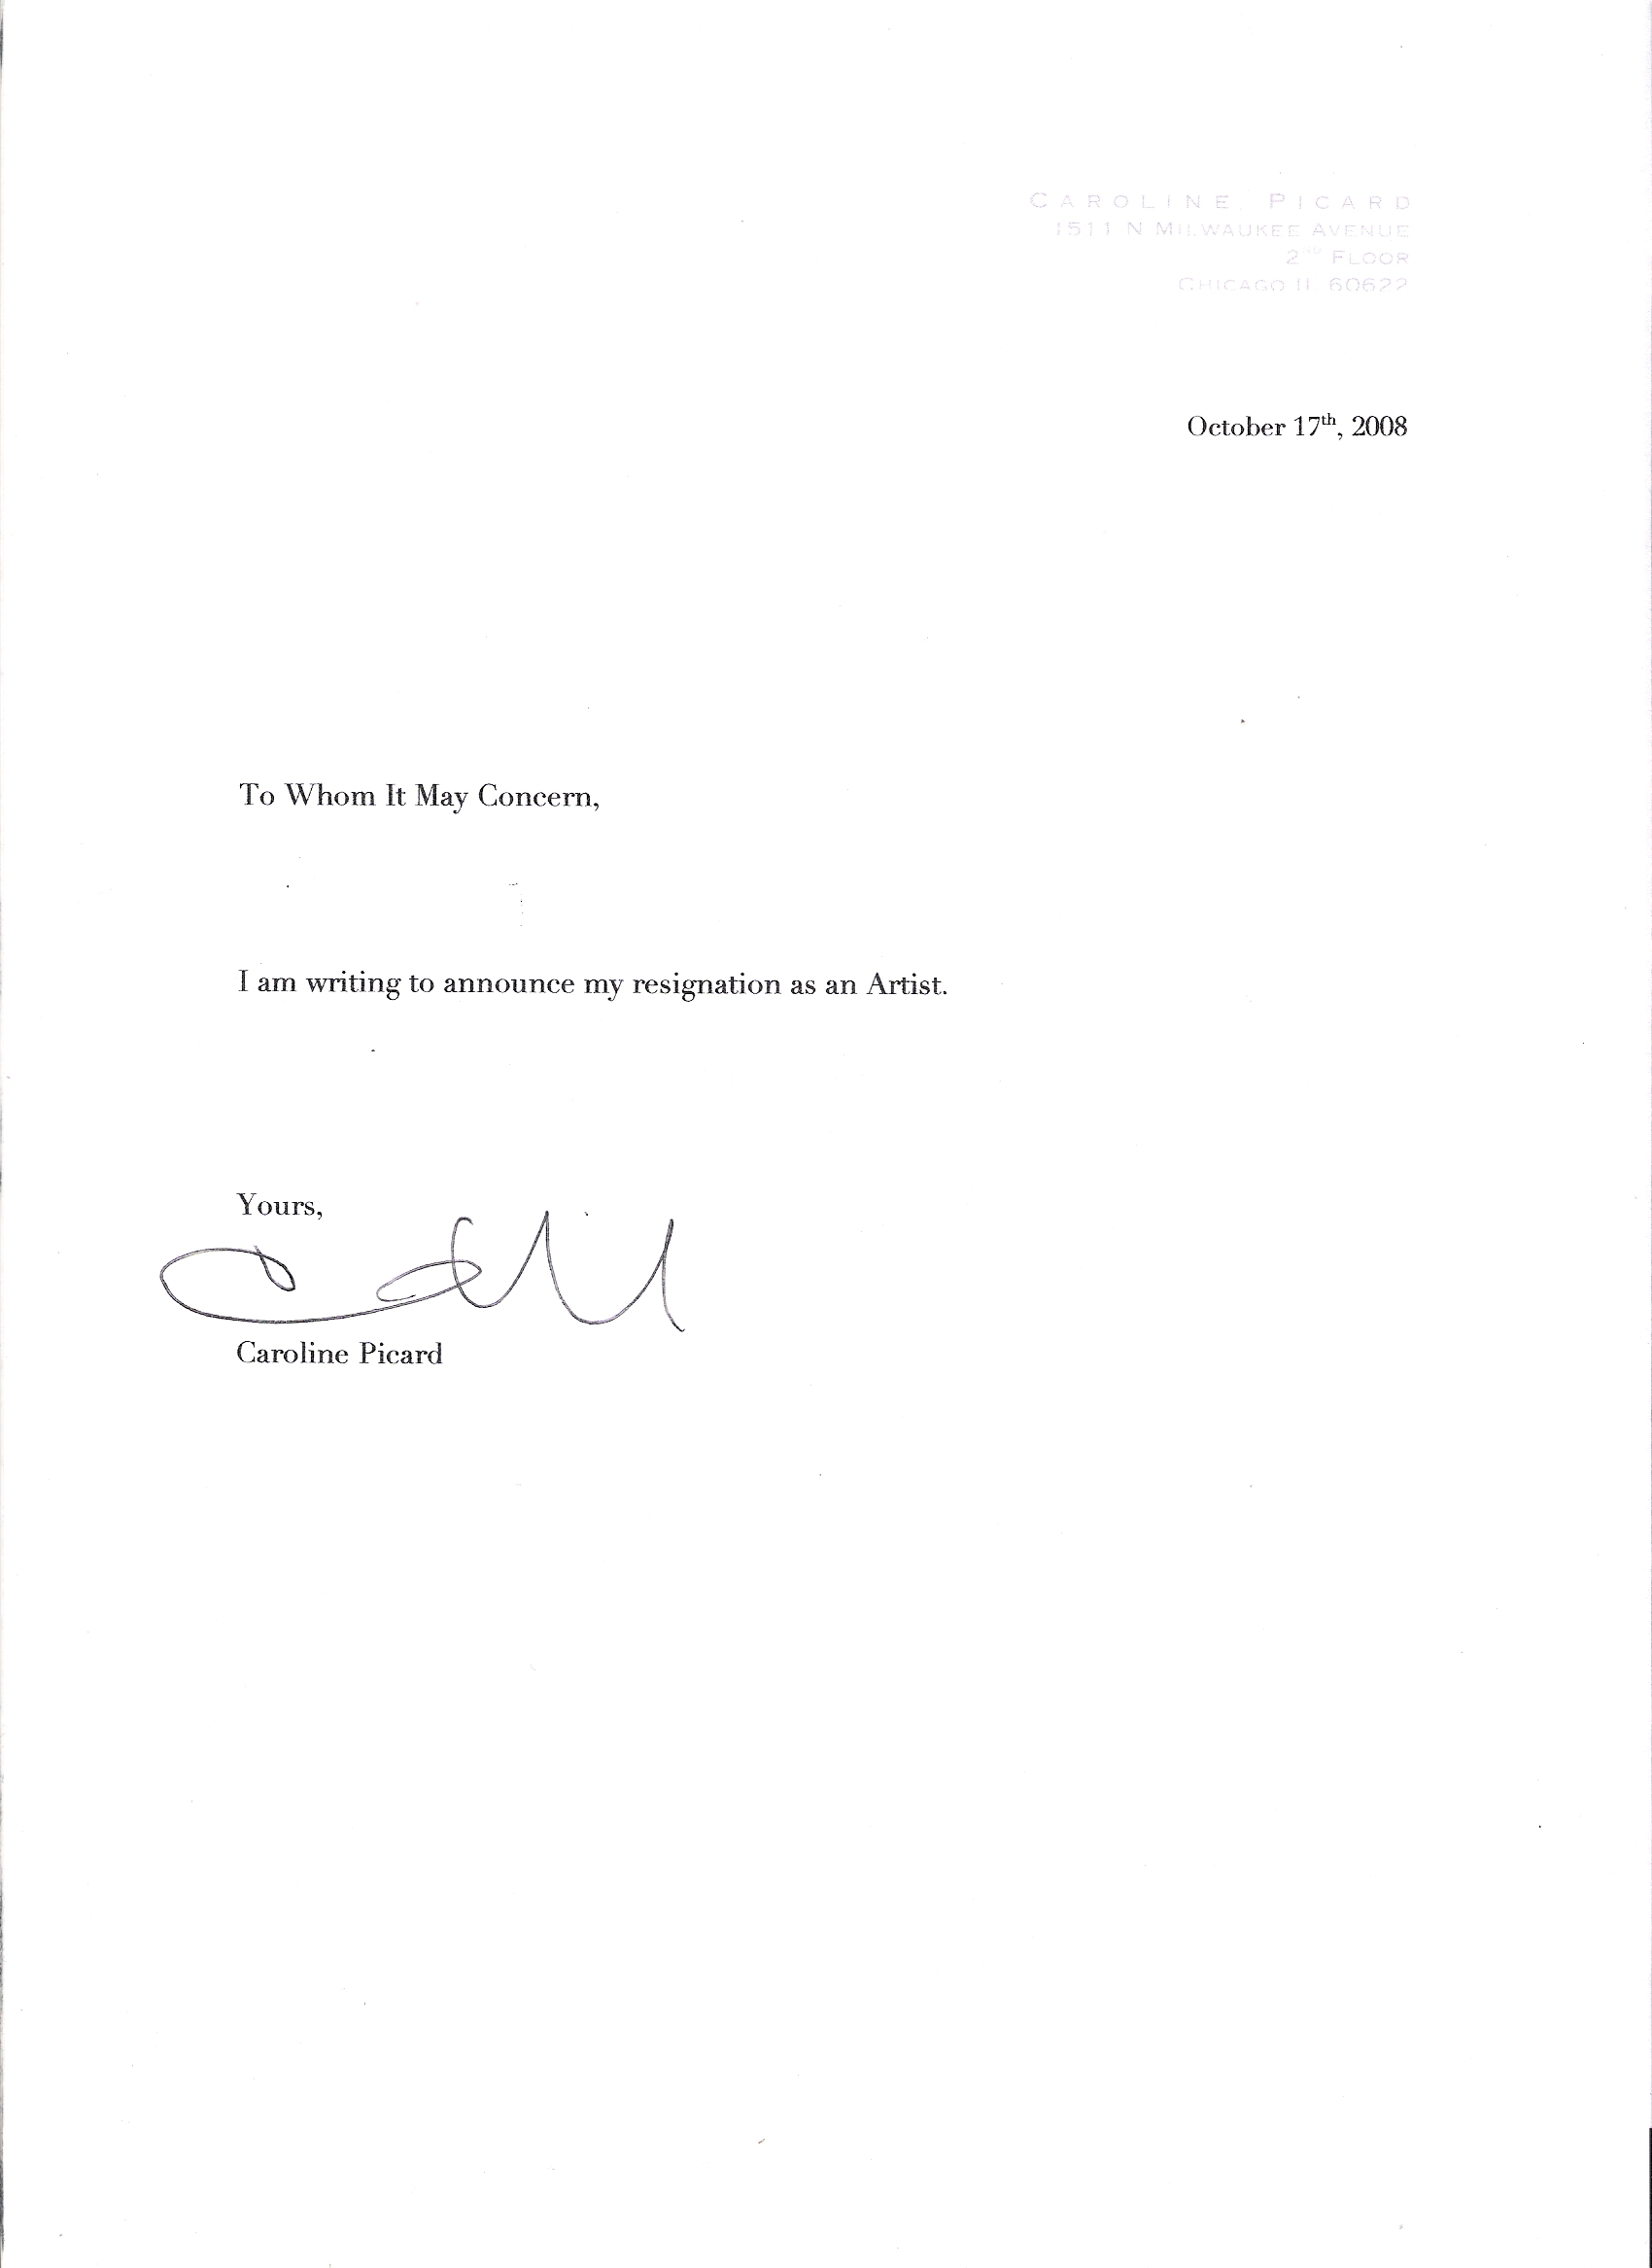 Sample Letter Of Resignation From Employer To Employee – Employer Resignation Letter to Employee